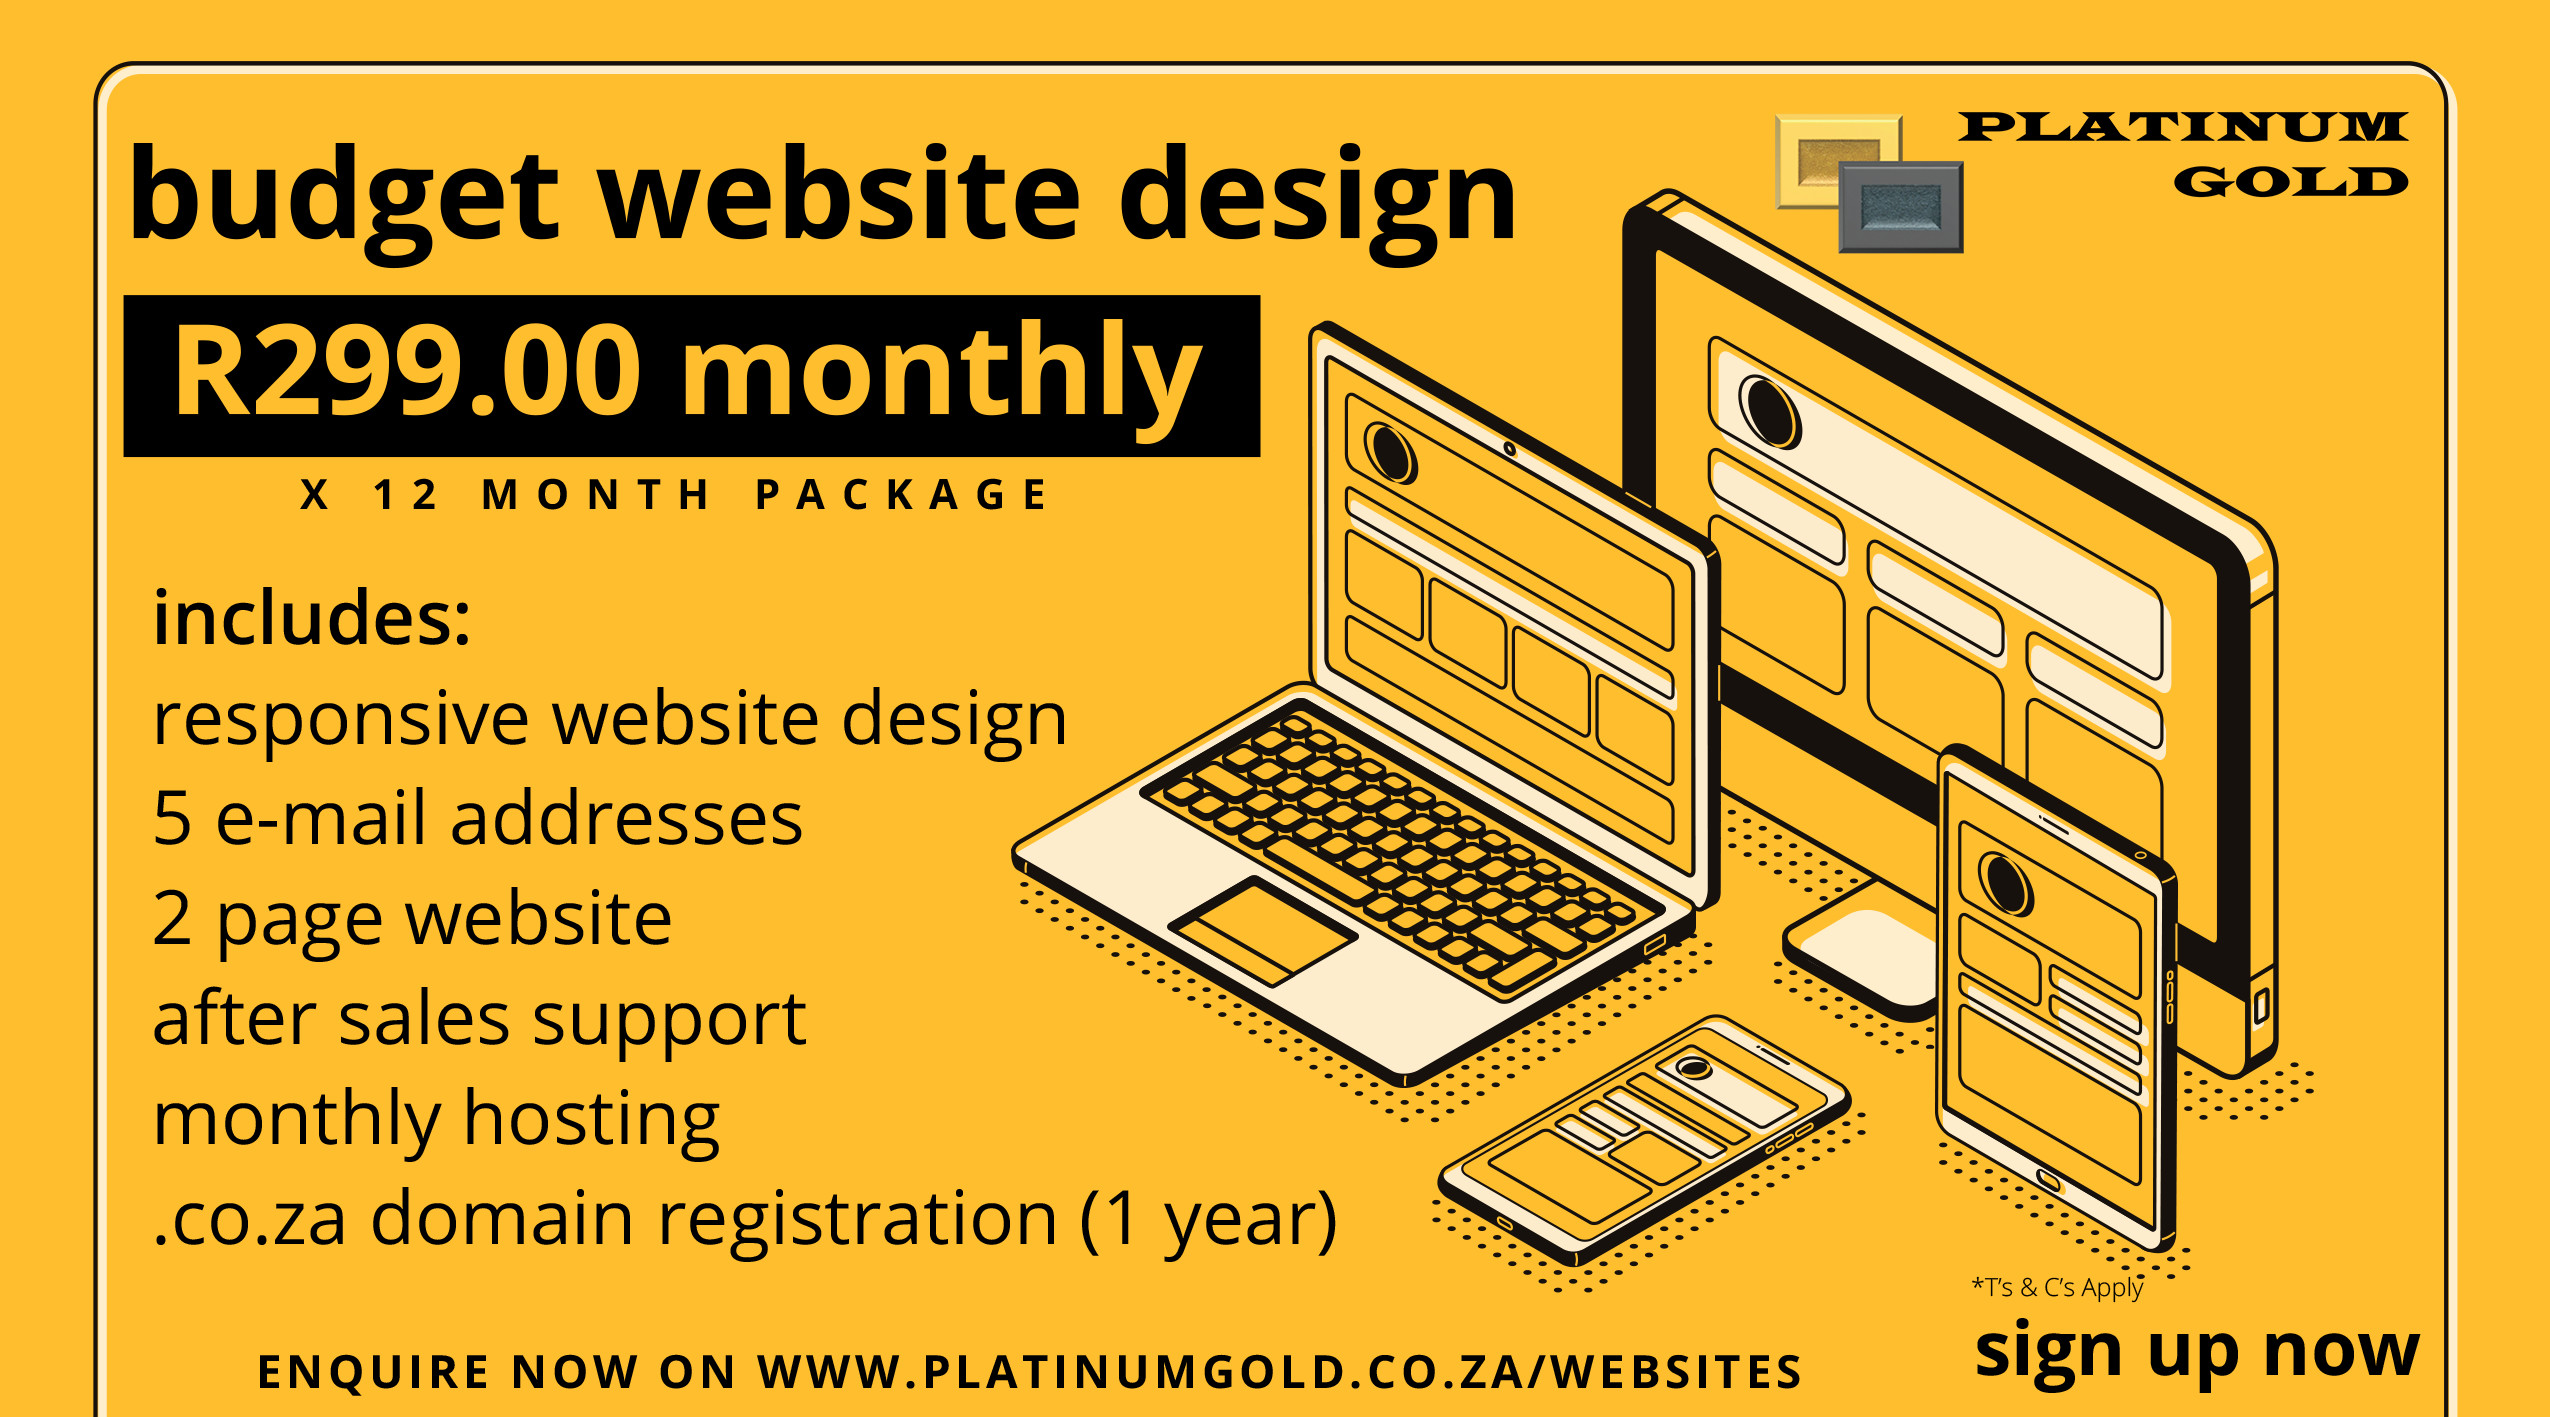 PG Budget Websites Ad 01